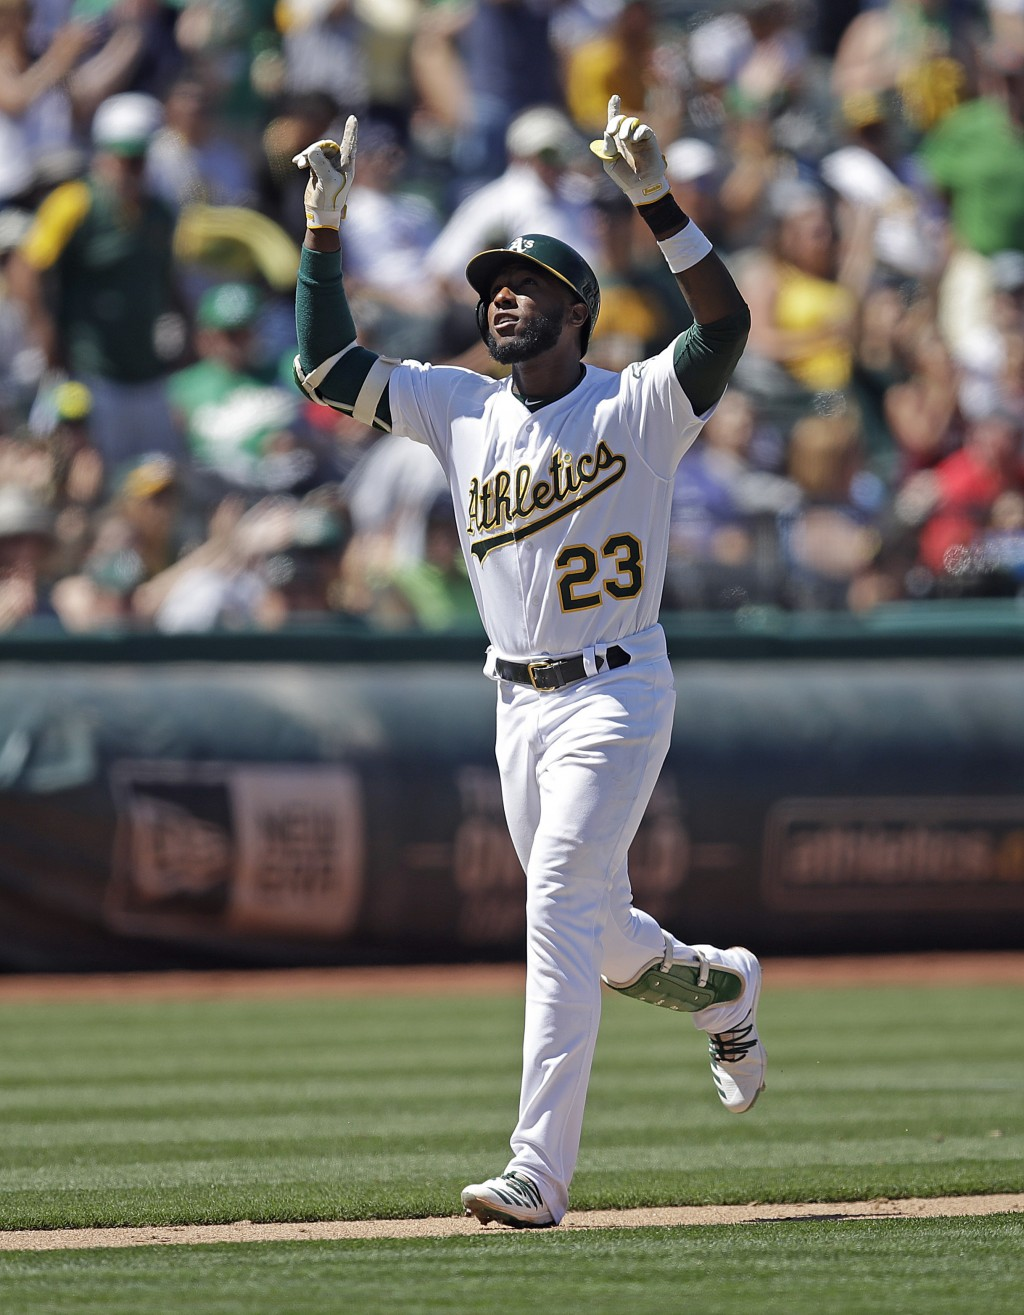 Oakland Athletics' Jurickson Profar celebrates after hitting a home run off St. Louis Cardinals' Adam Wainwright in the sixth inning of a baseball gam